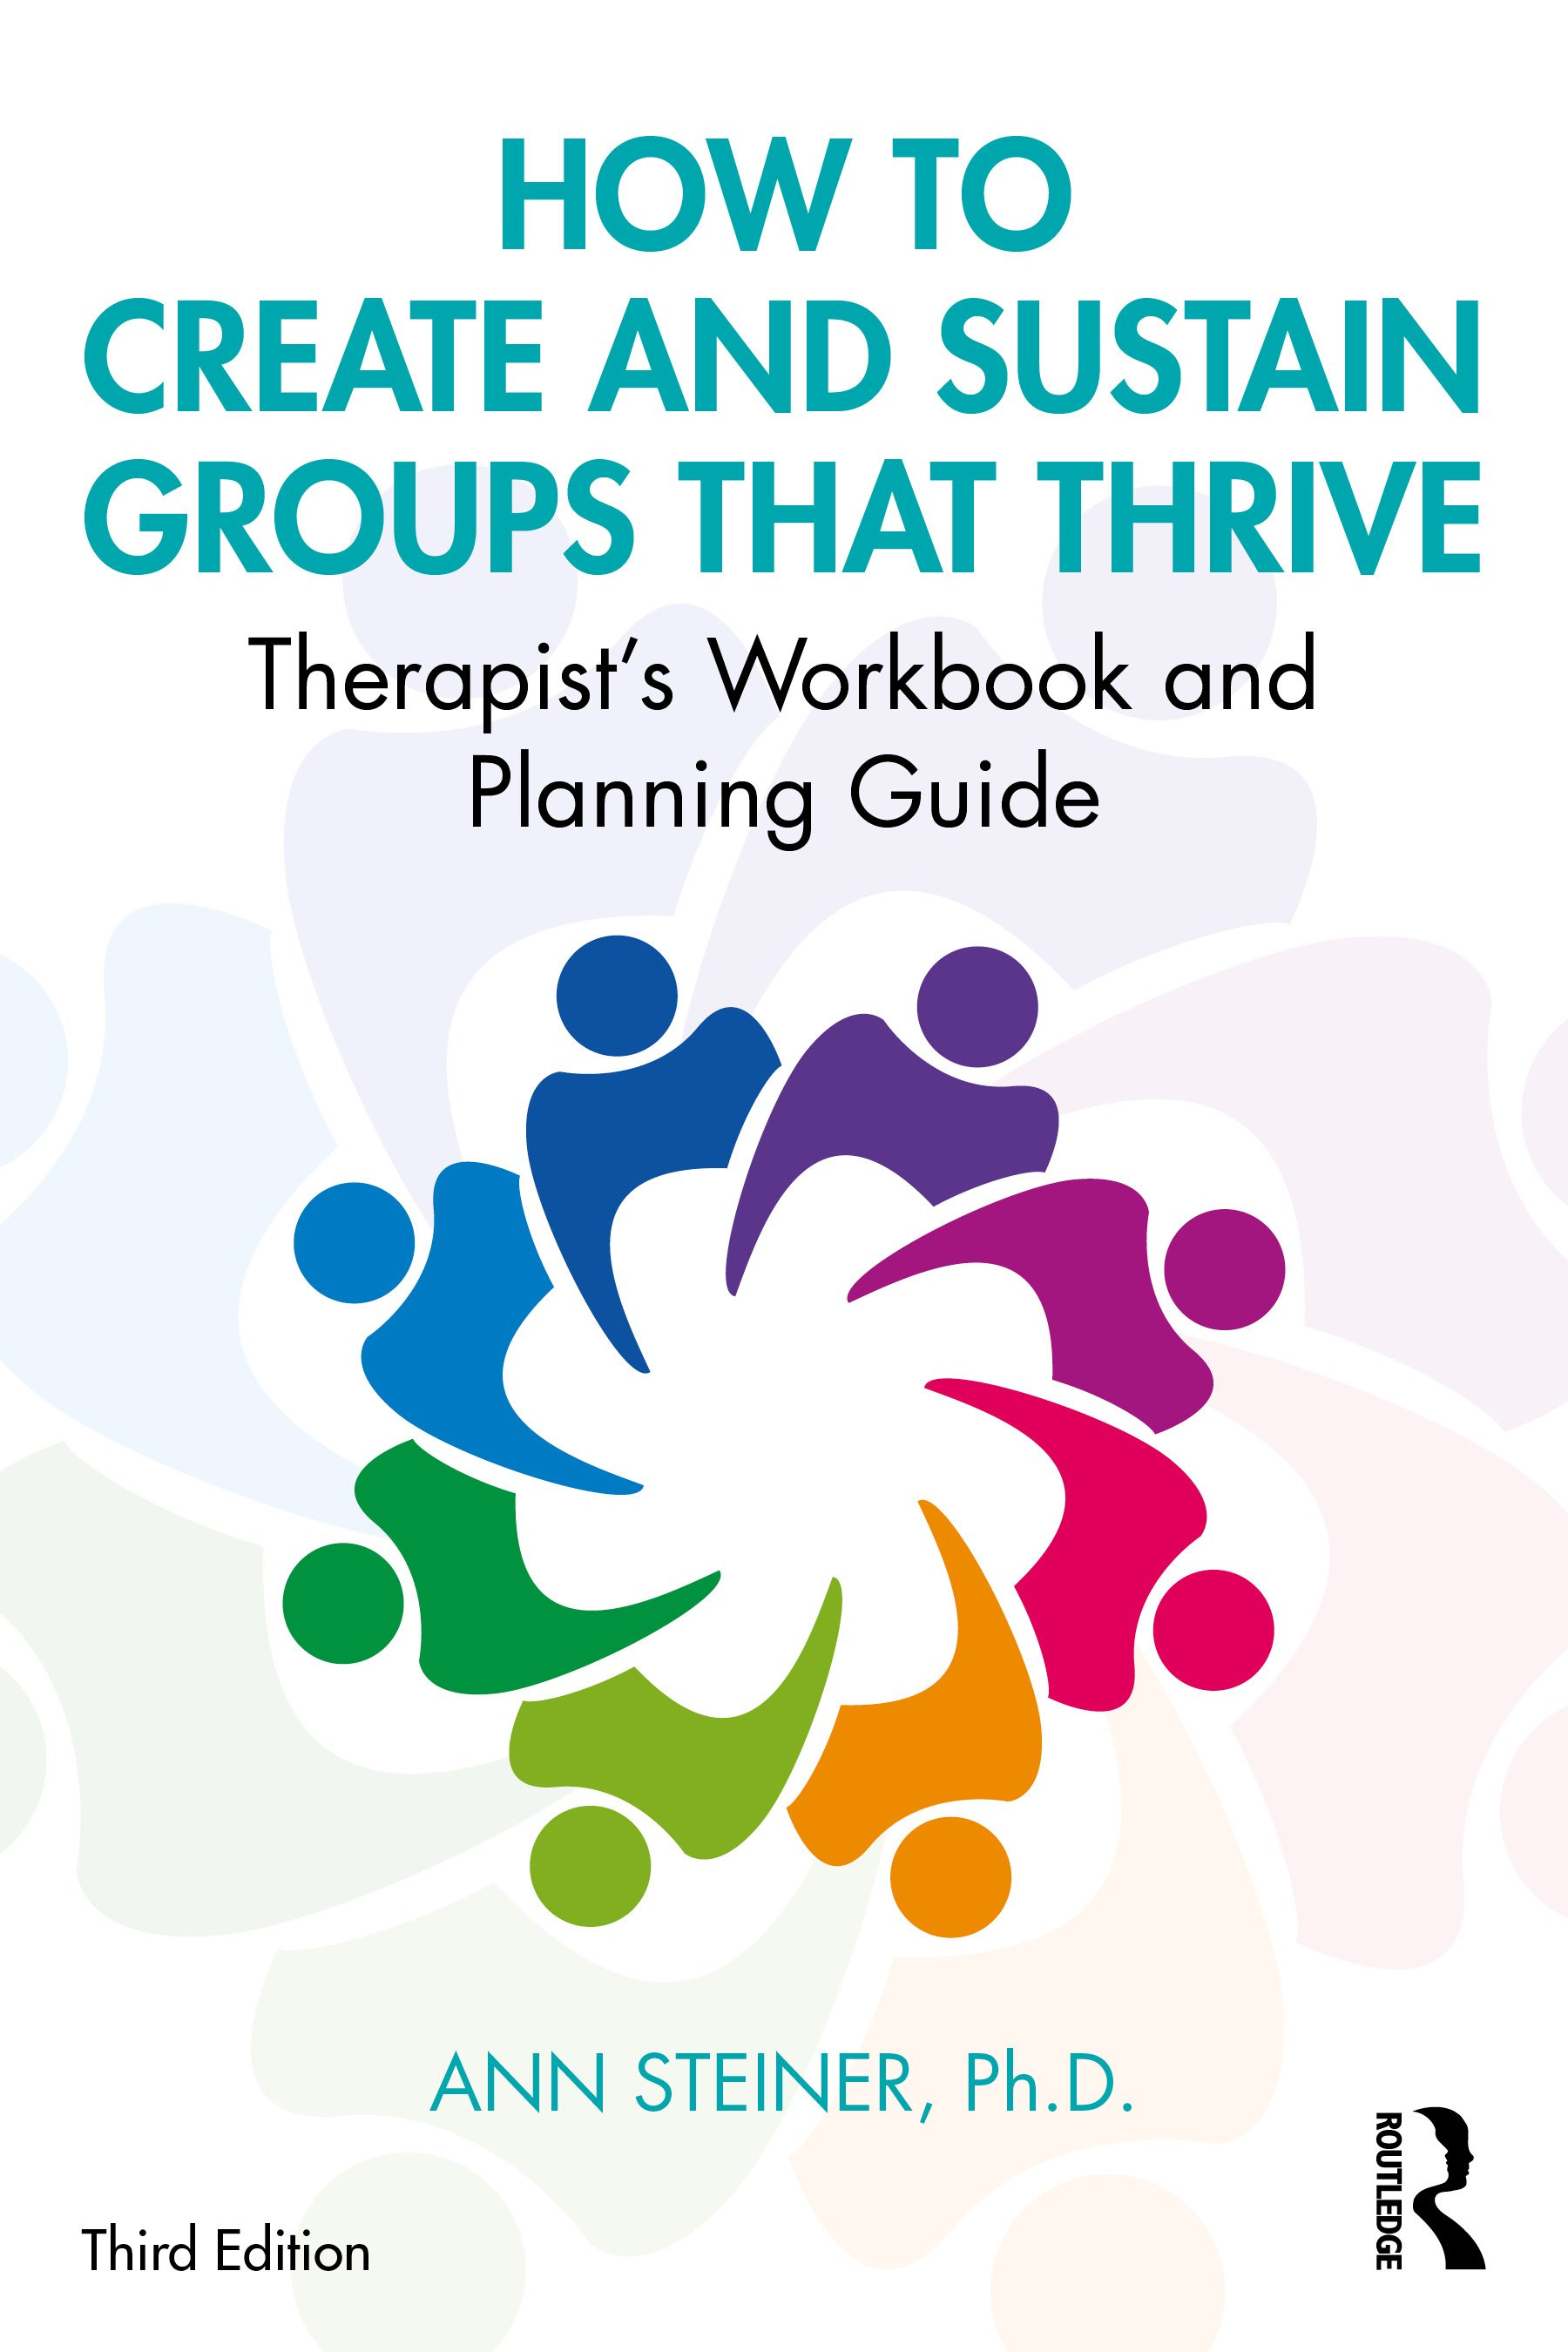 How to Create and Sustain Groups that Thrive: Therapist's Workbook and Planning Guide book cover